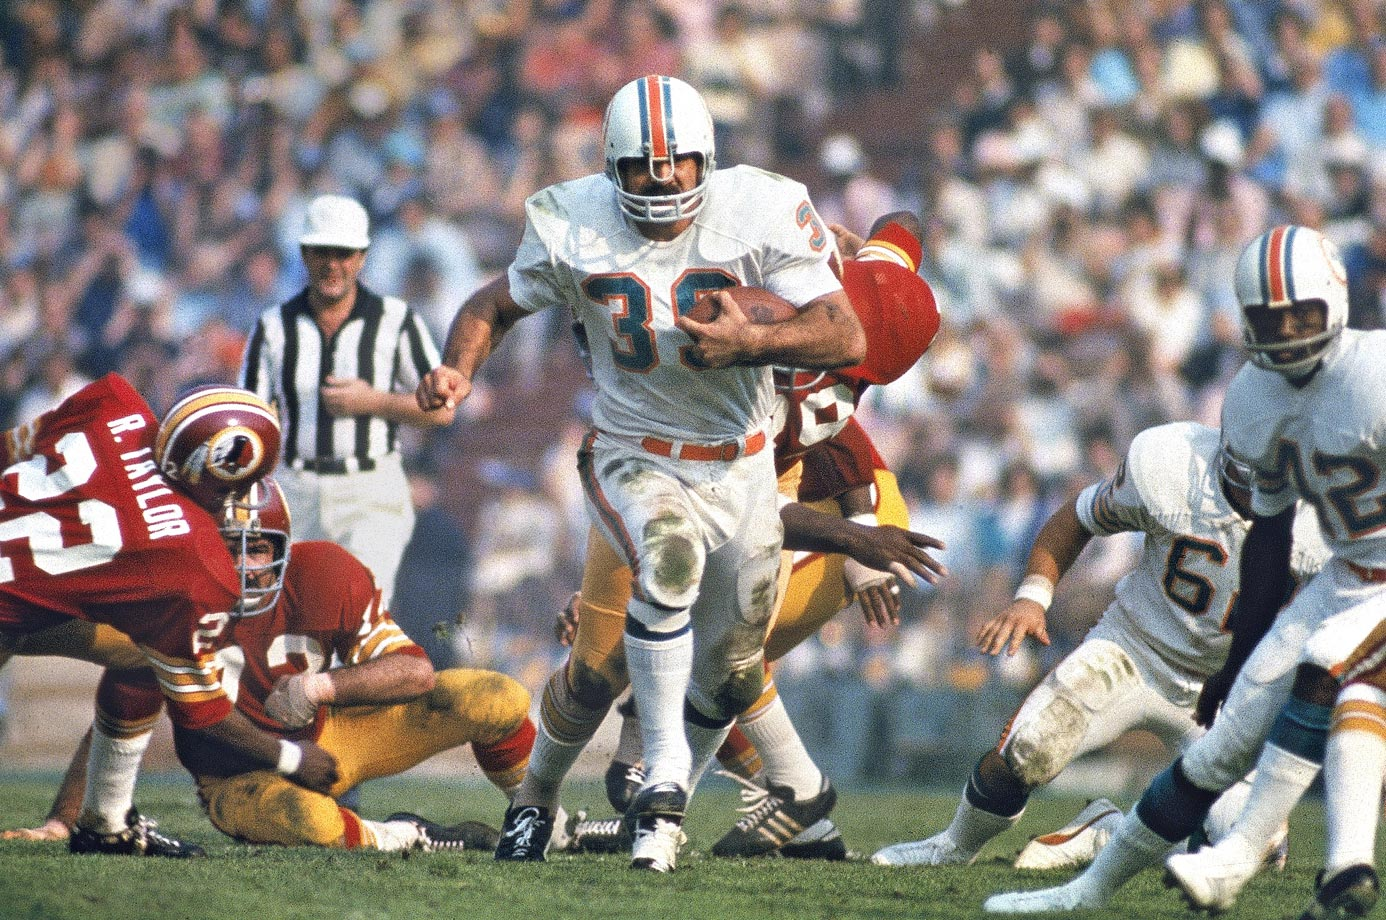 Miami Dolphins fullback Larry Csonka charges up the middle against the Washington Redskins in Super Bowl VII, in January 1973.